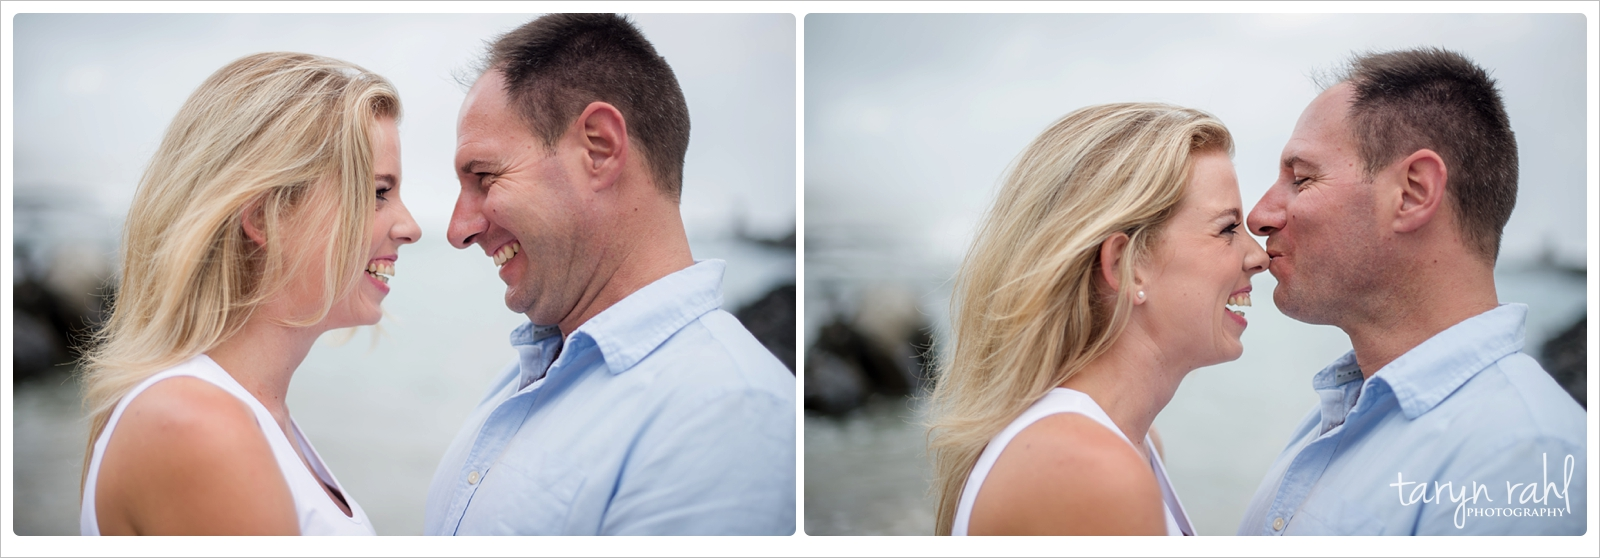 Yolande and Ricky | engagement shoot